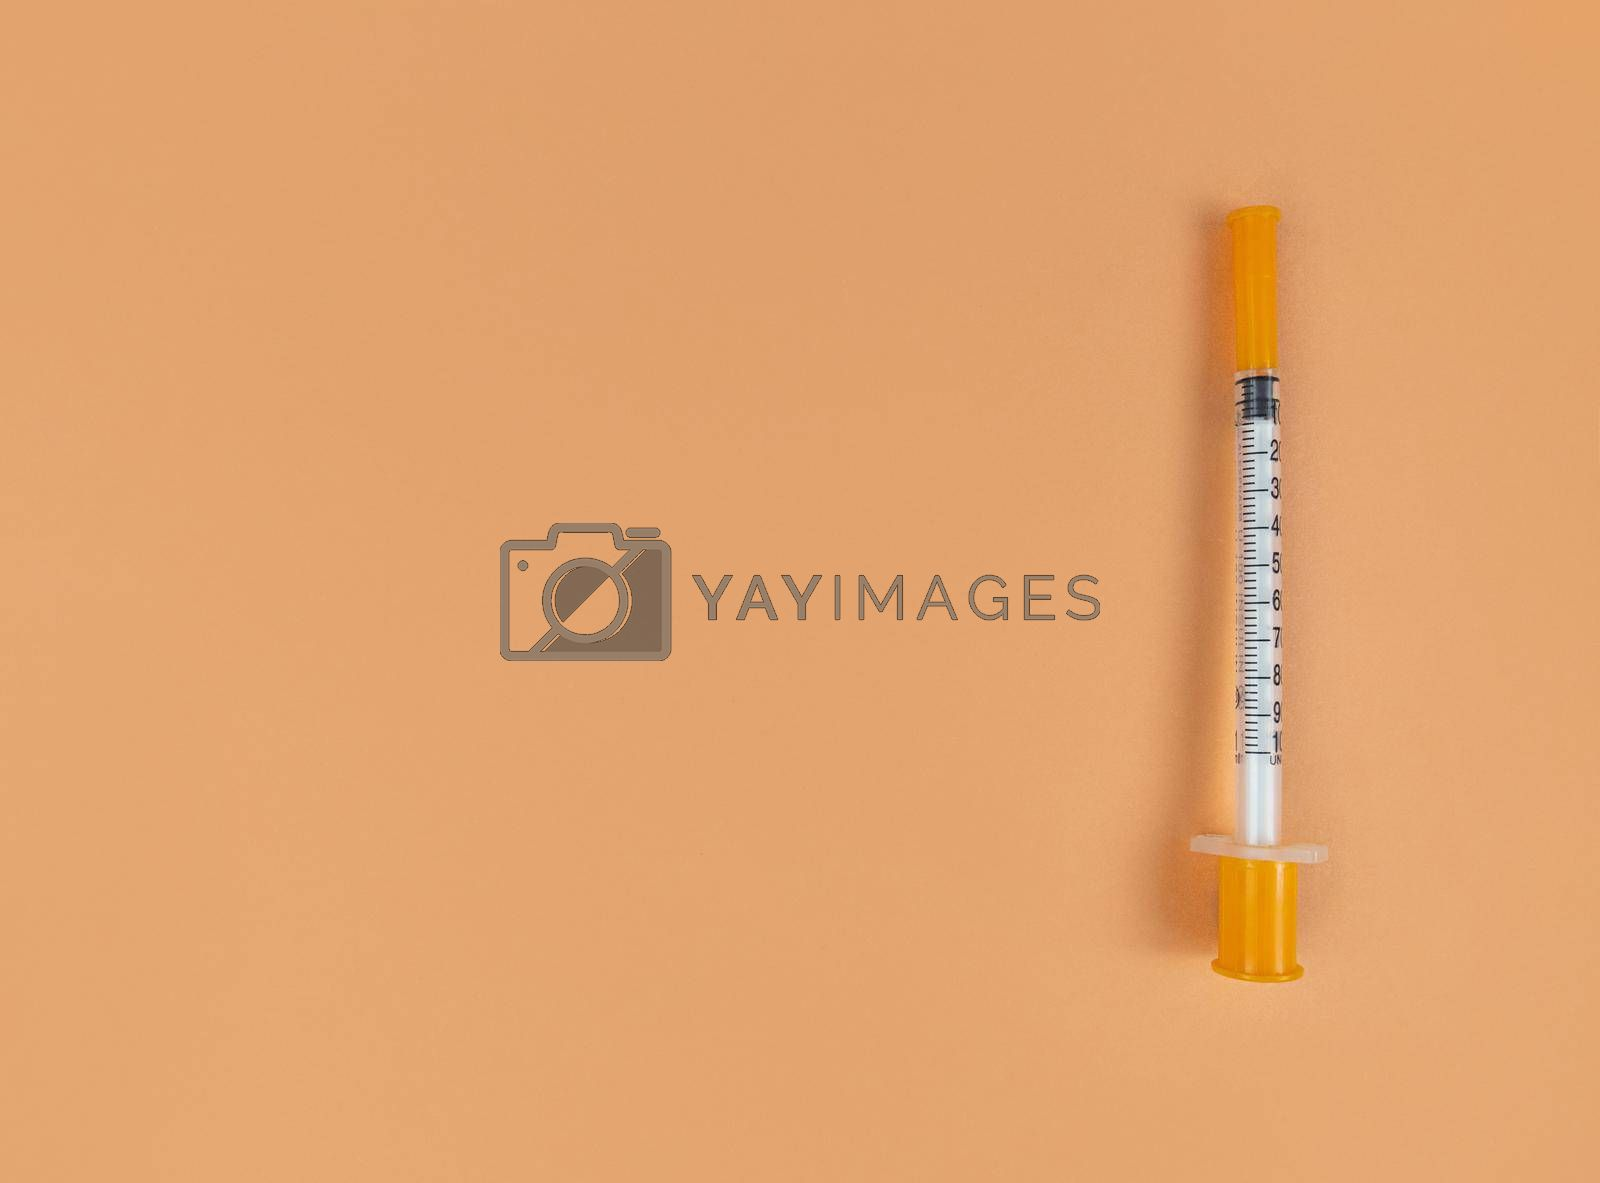 Insulin syringe on an orange background with copy space.